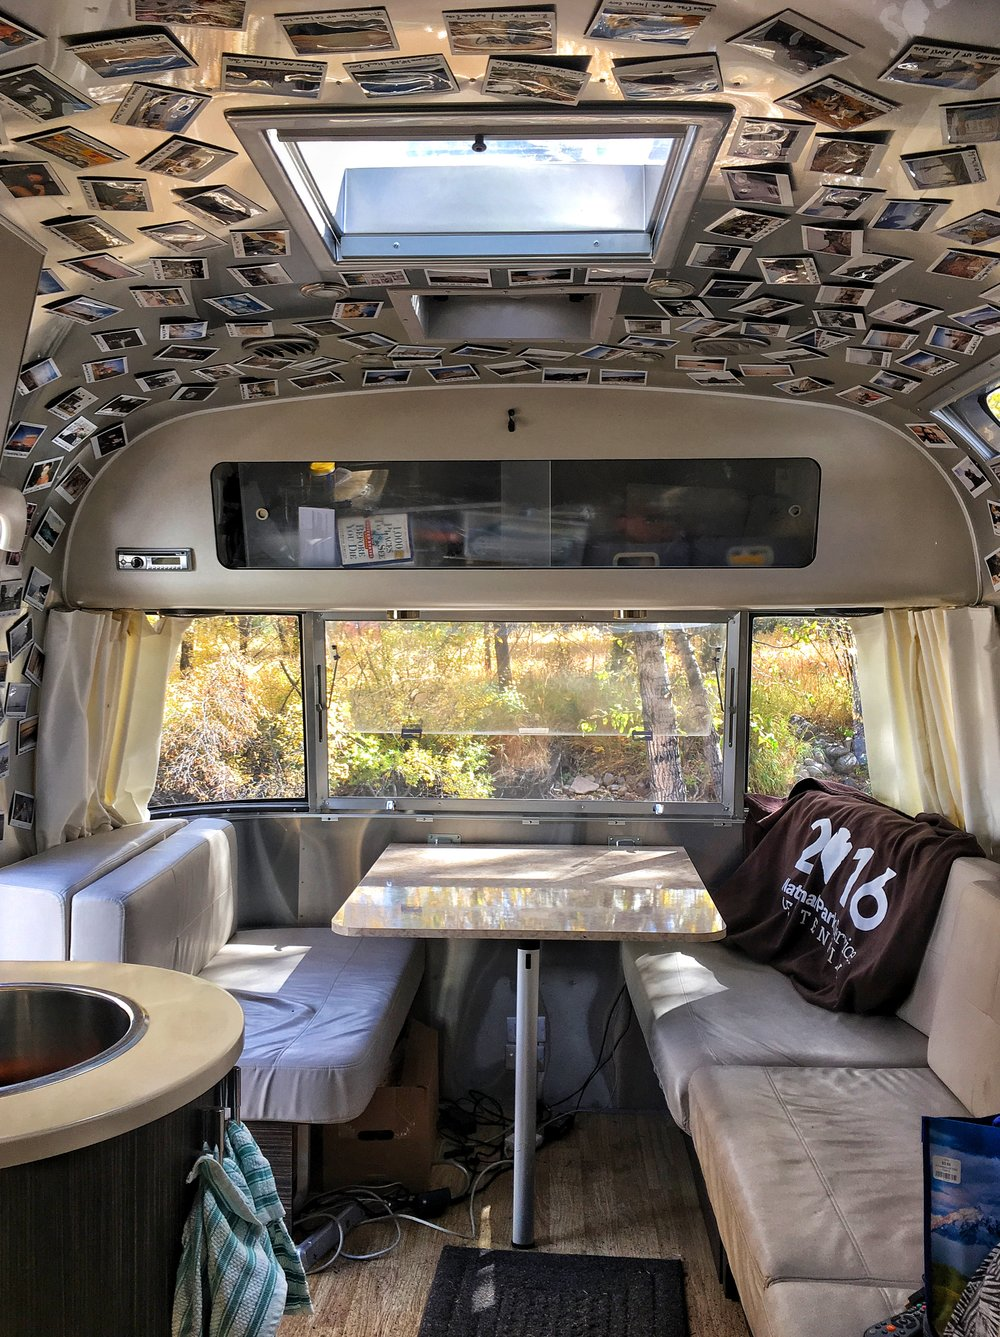 Inside Wally the Airstream! We decorated the cieling with Fujifilm Instax. Photo credit: Stefanie Payne